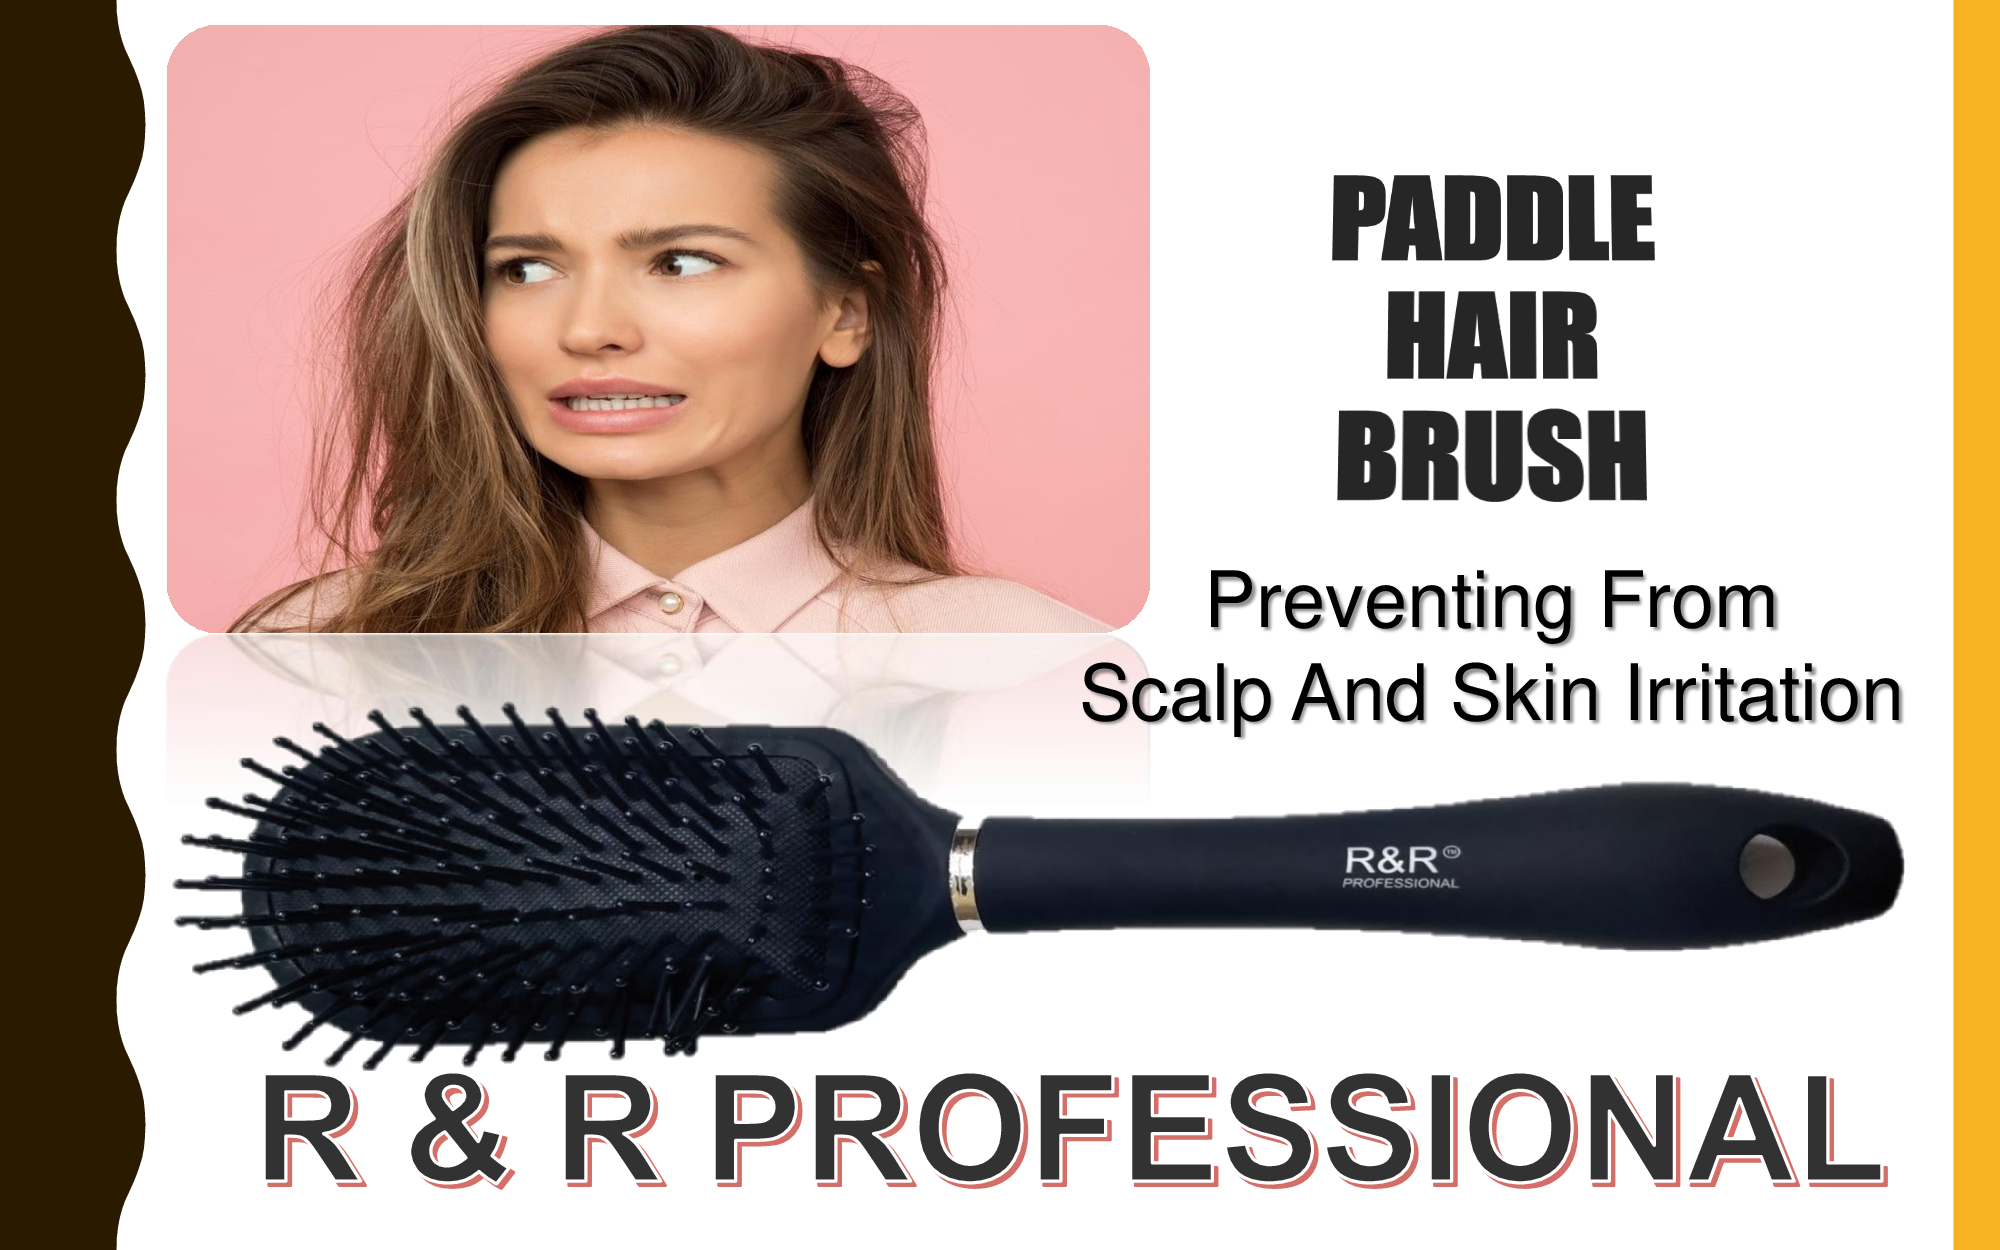 R & R PROFESSIONAL ROOTS HAIR BRUSH